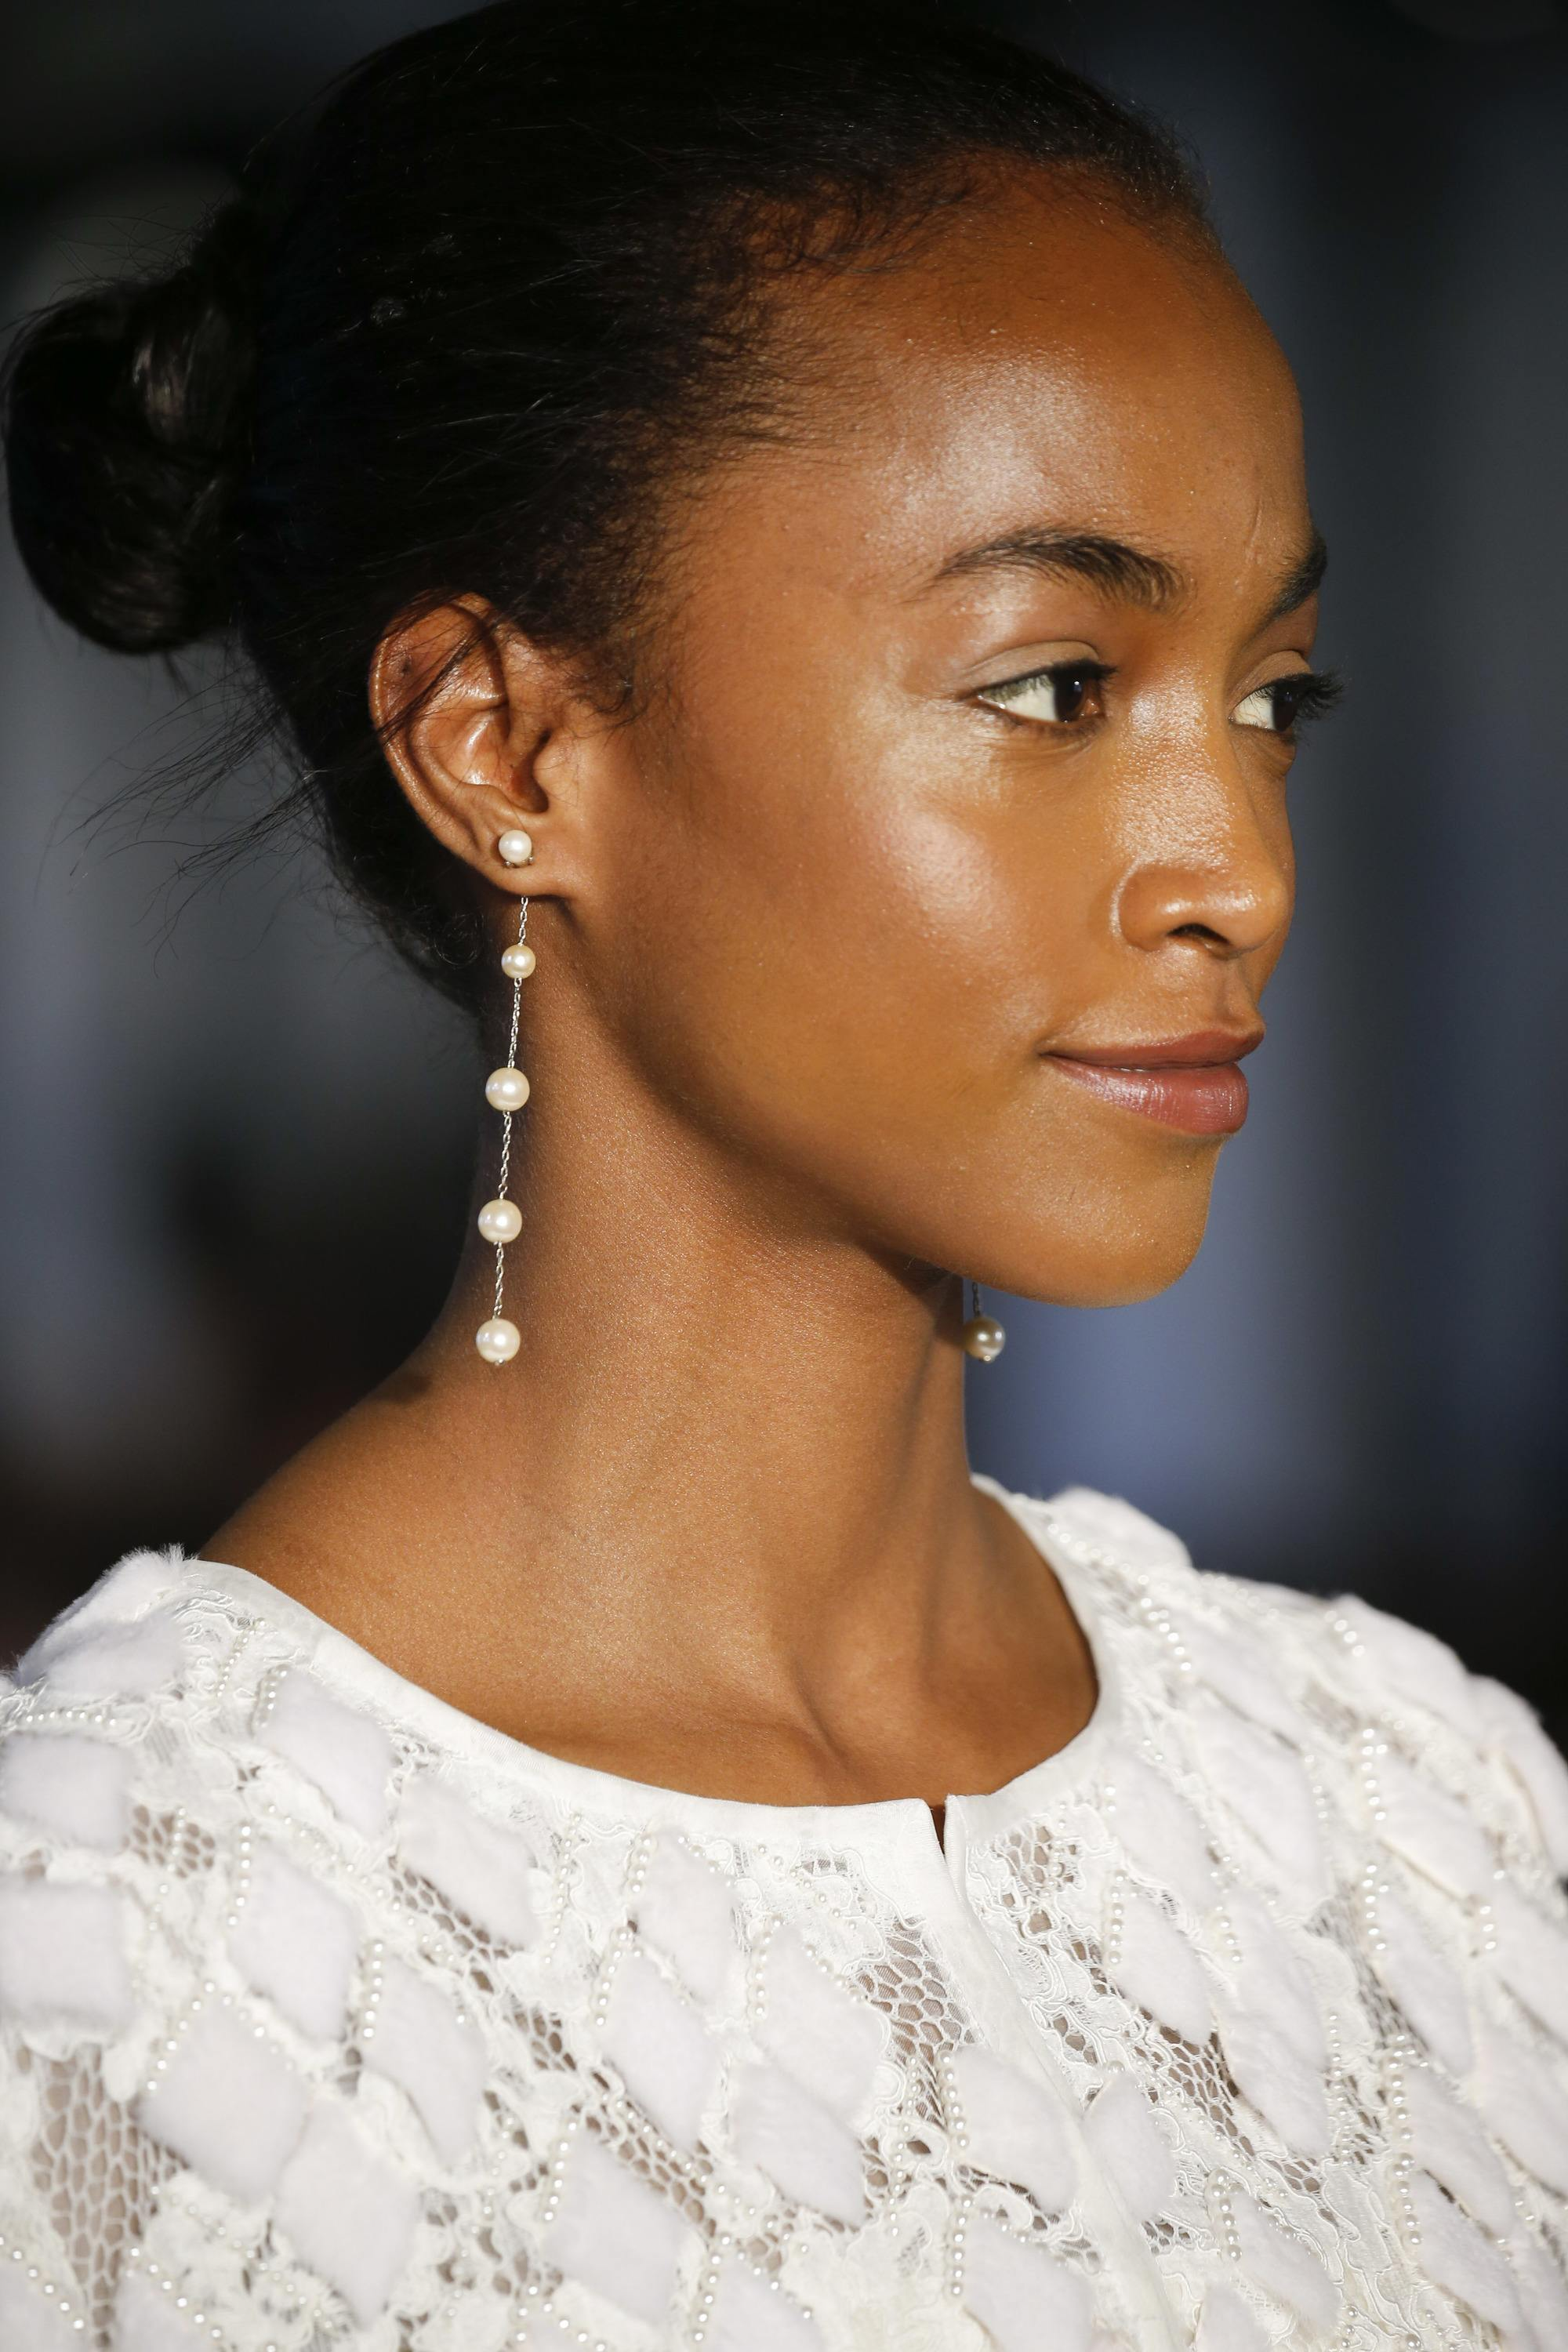 Wedding hairstyles: Model on the runway with a polished and shiny ballerina bun, wearing wedding dress with drop earrings